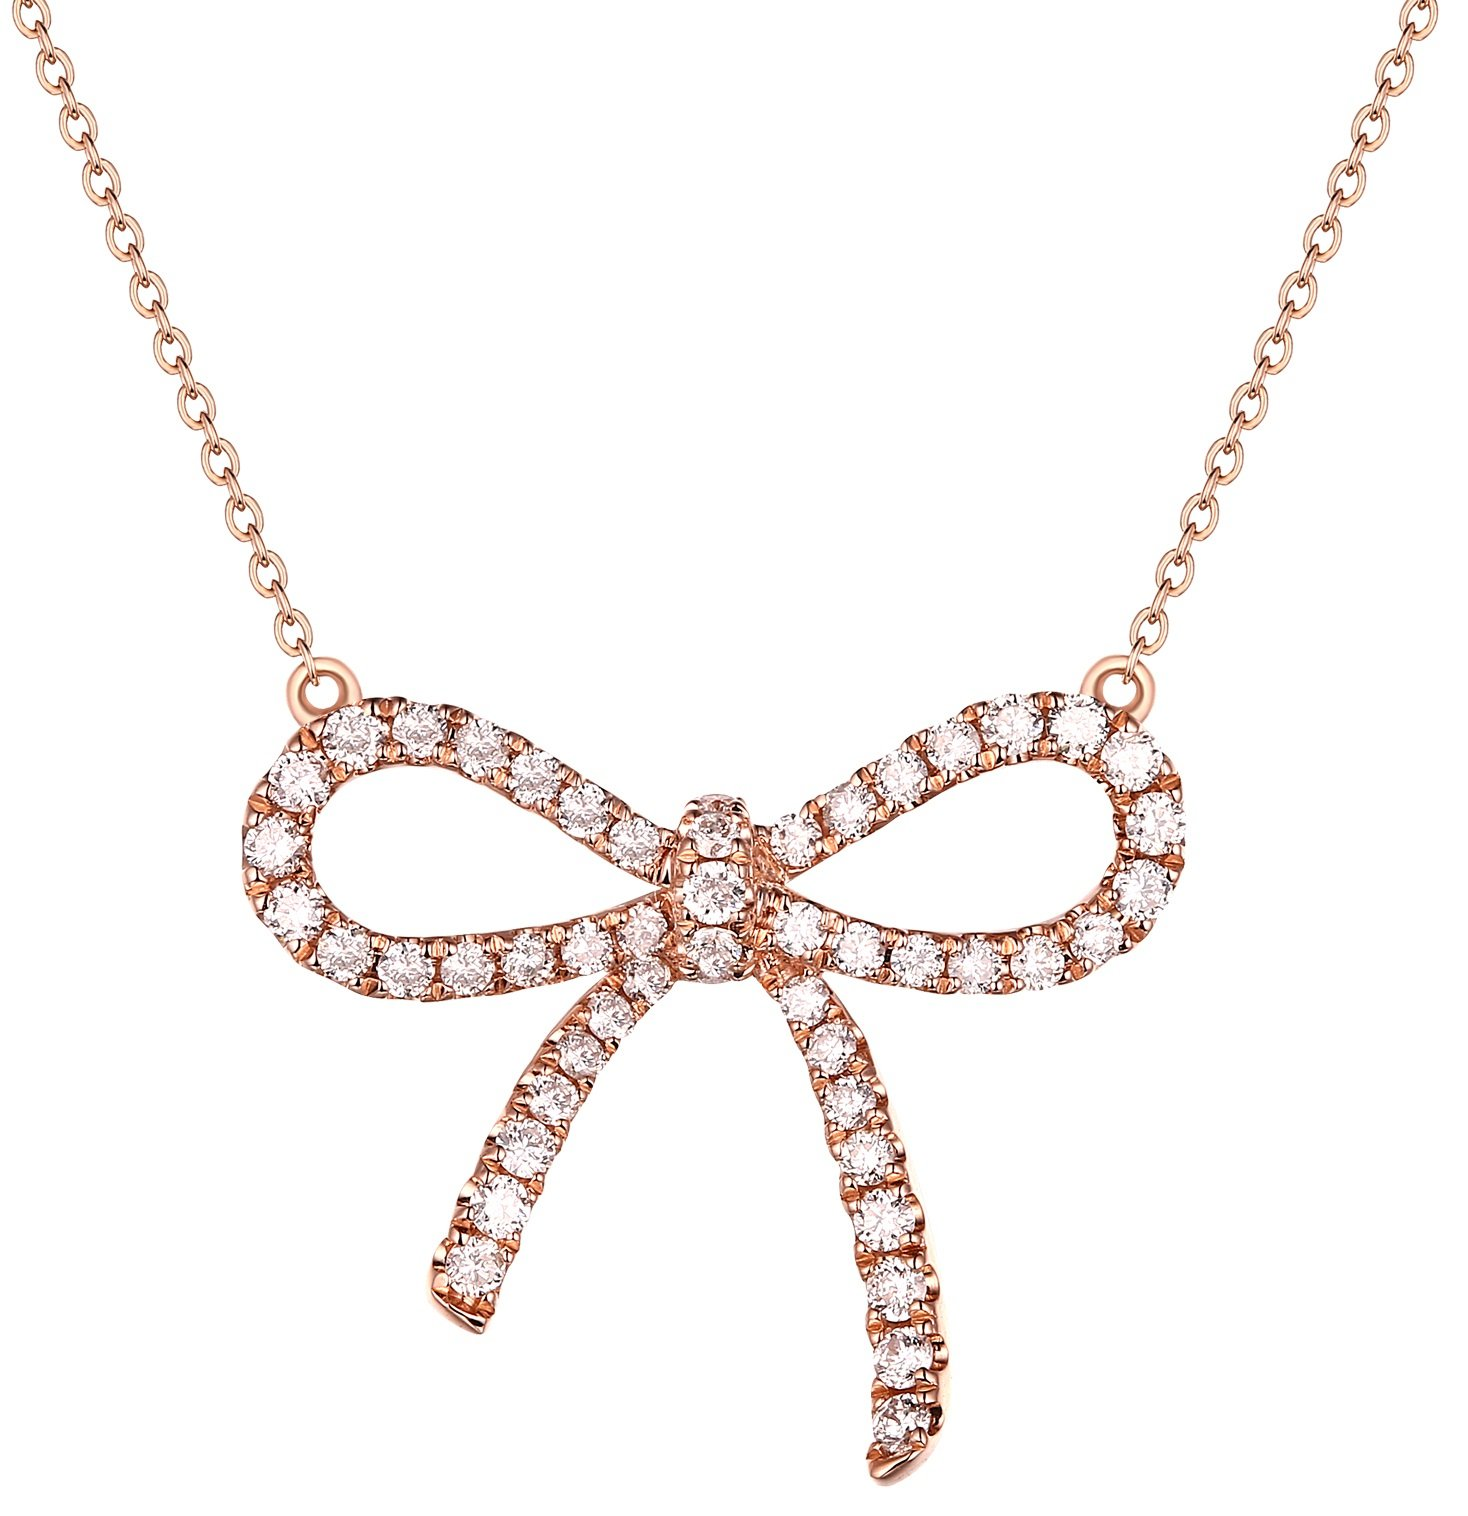 Prism Jewel 0.35 Carat Natural G-H/I2-I3 Diamond Bow Tie Style Necklace, 14k Rose Gold